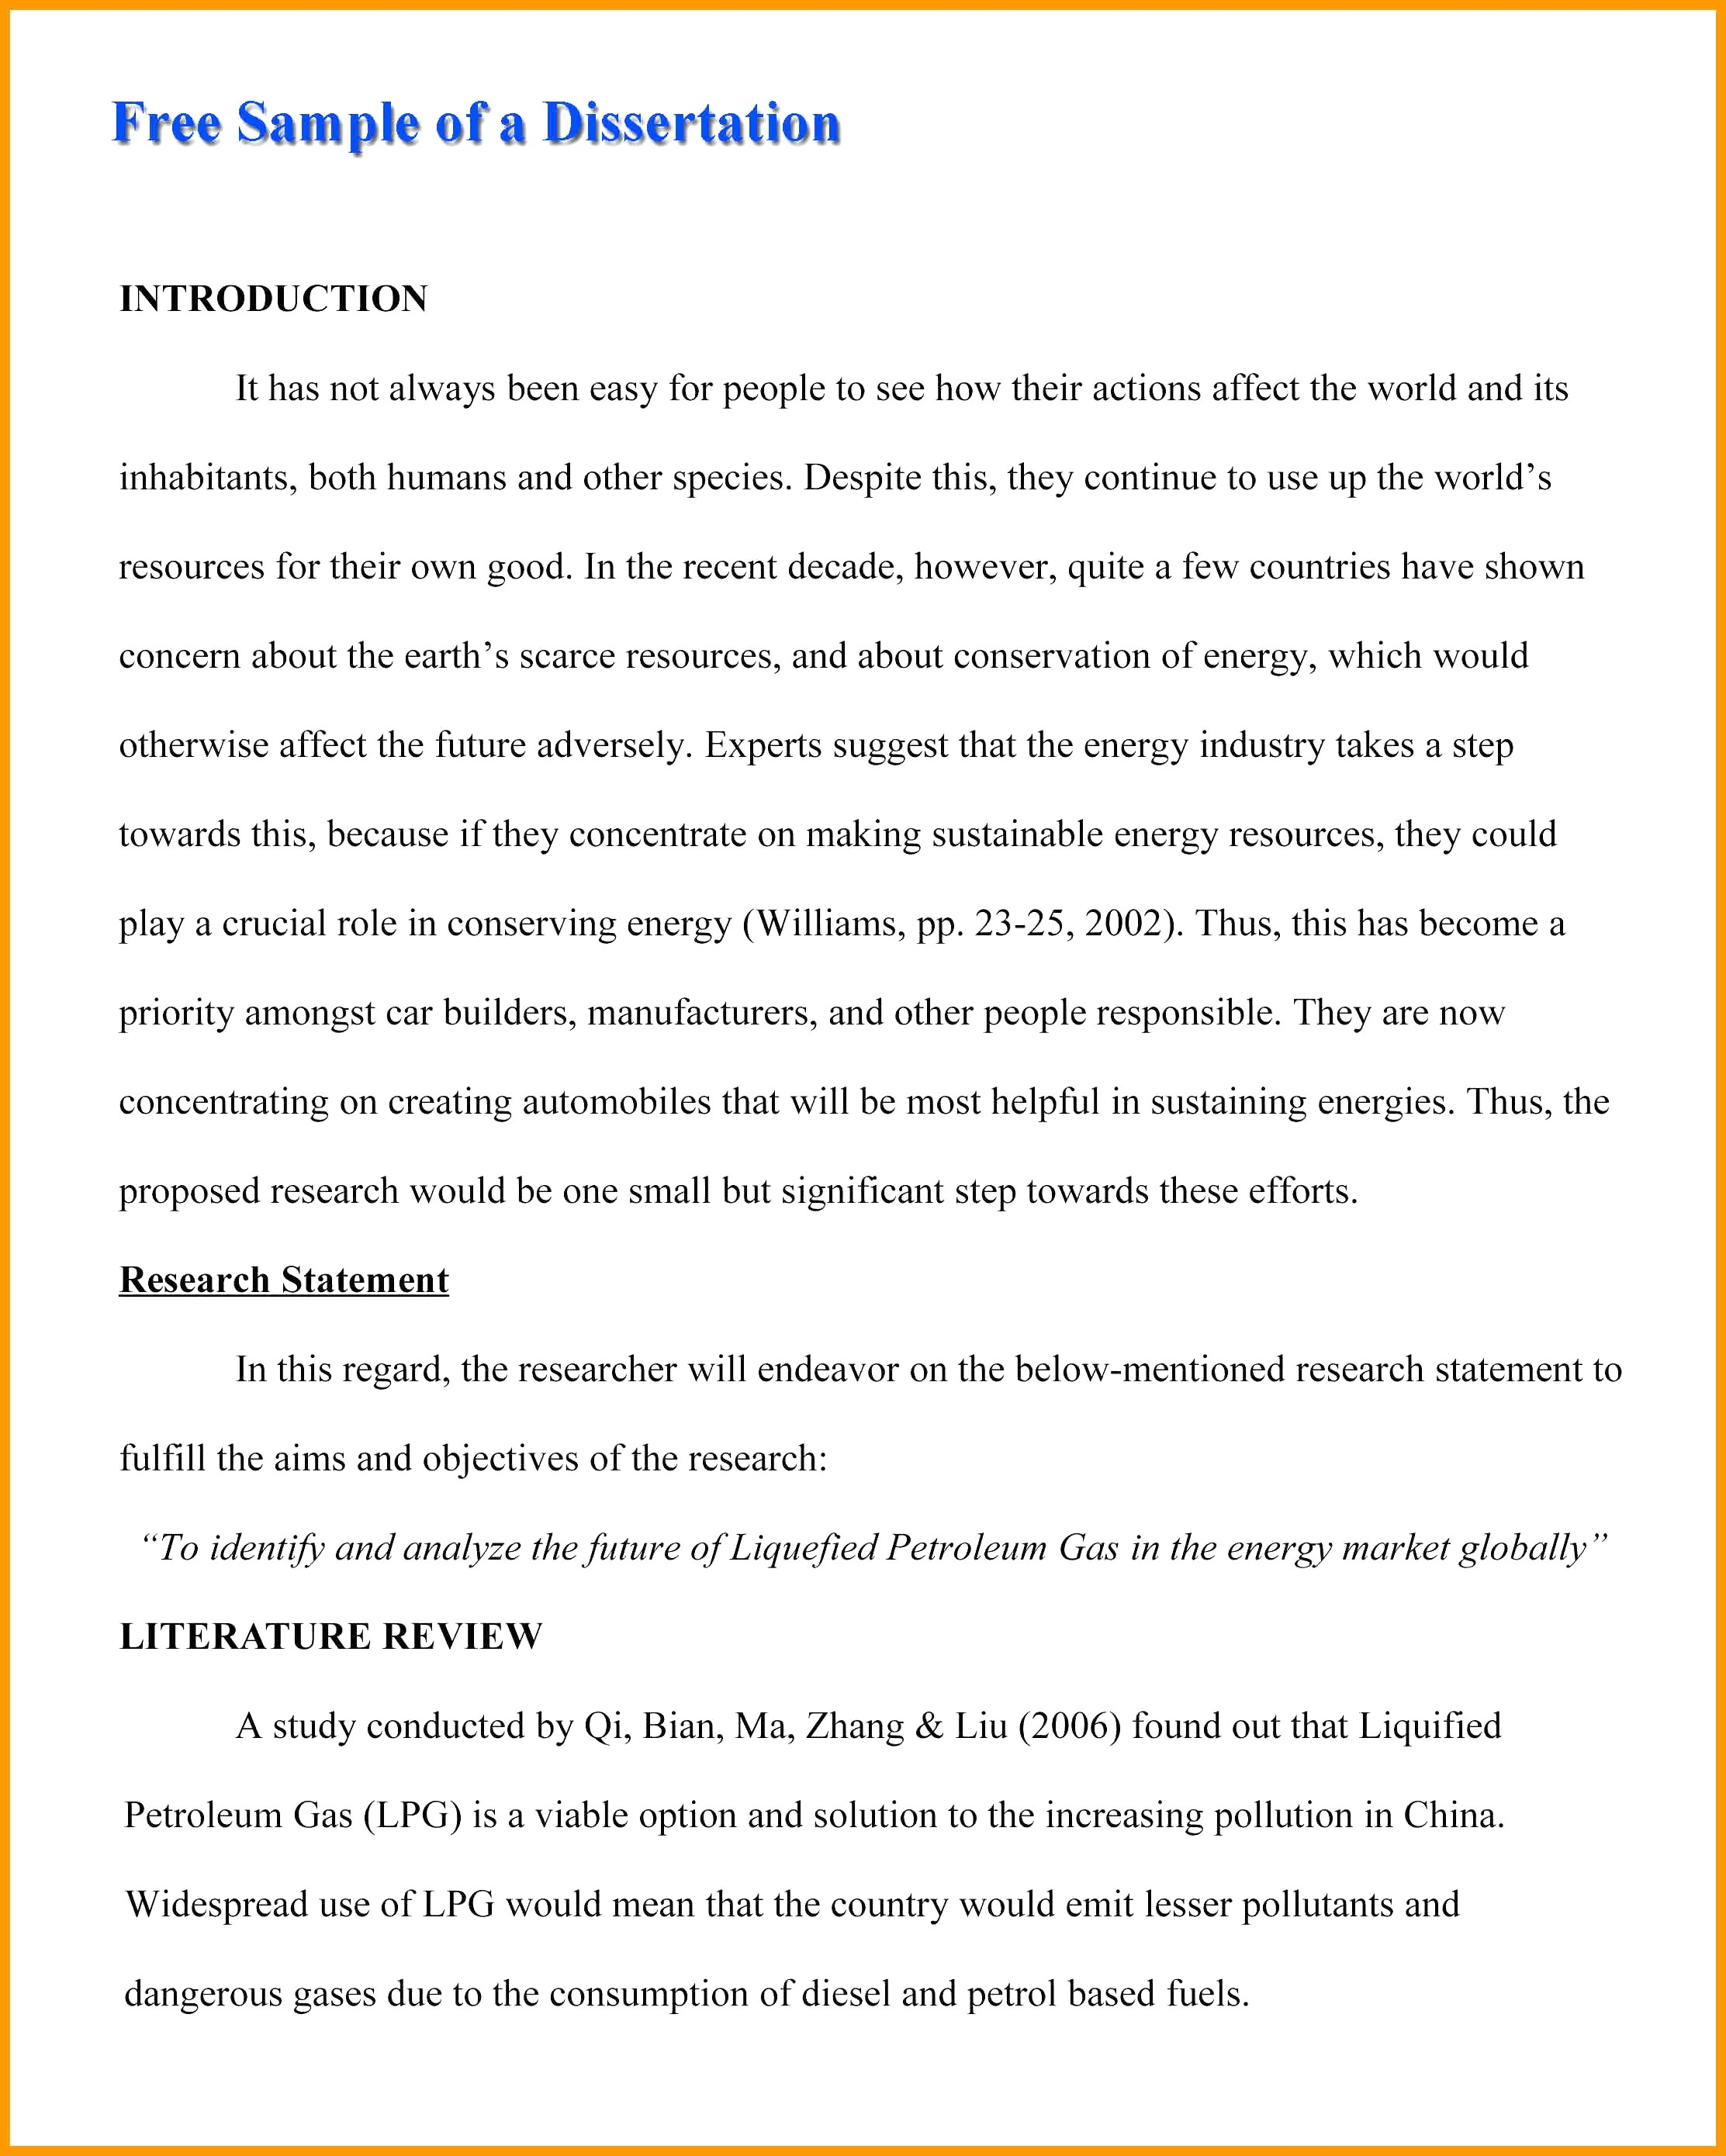 004 War On Drugs Research Paper Outline Filename Books Historical Pertaining To History Essay Impressive Unique Ideas Template Topics For High School Students Full